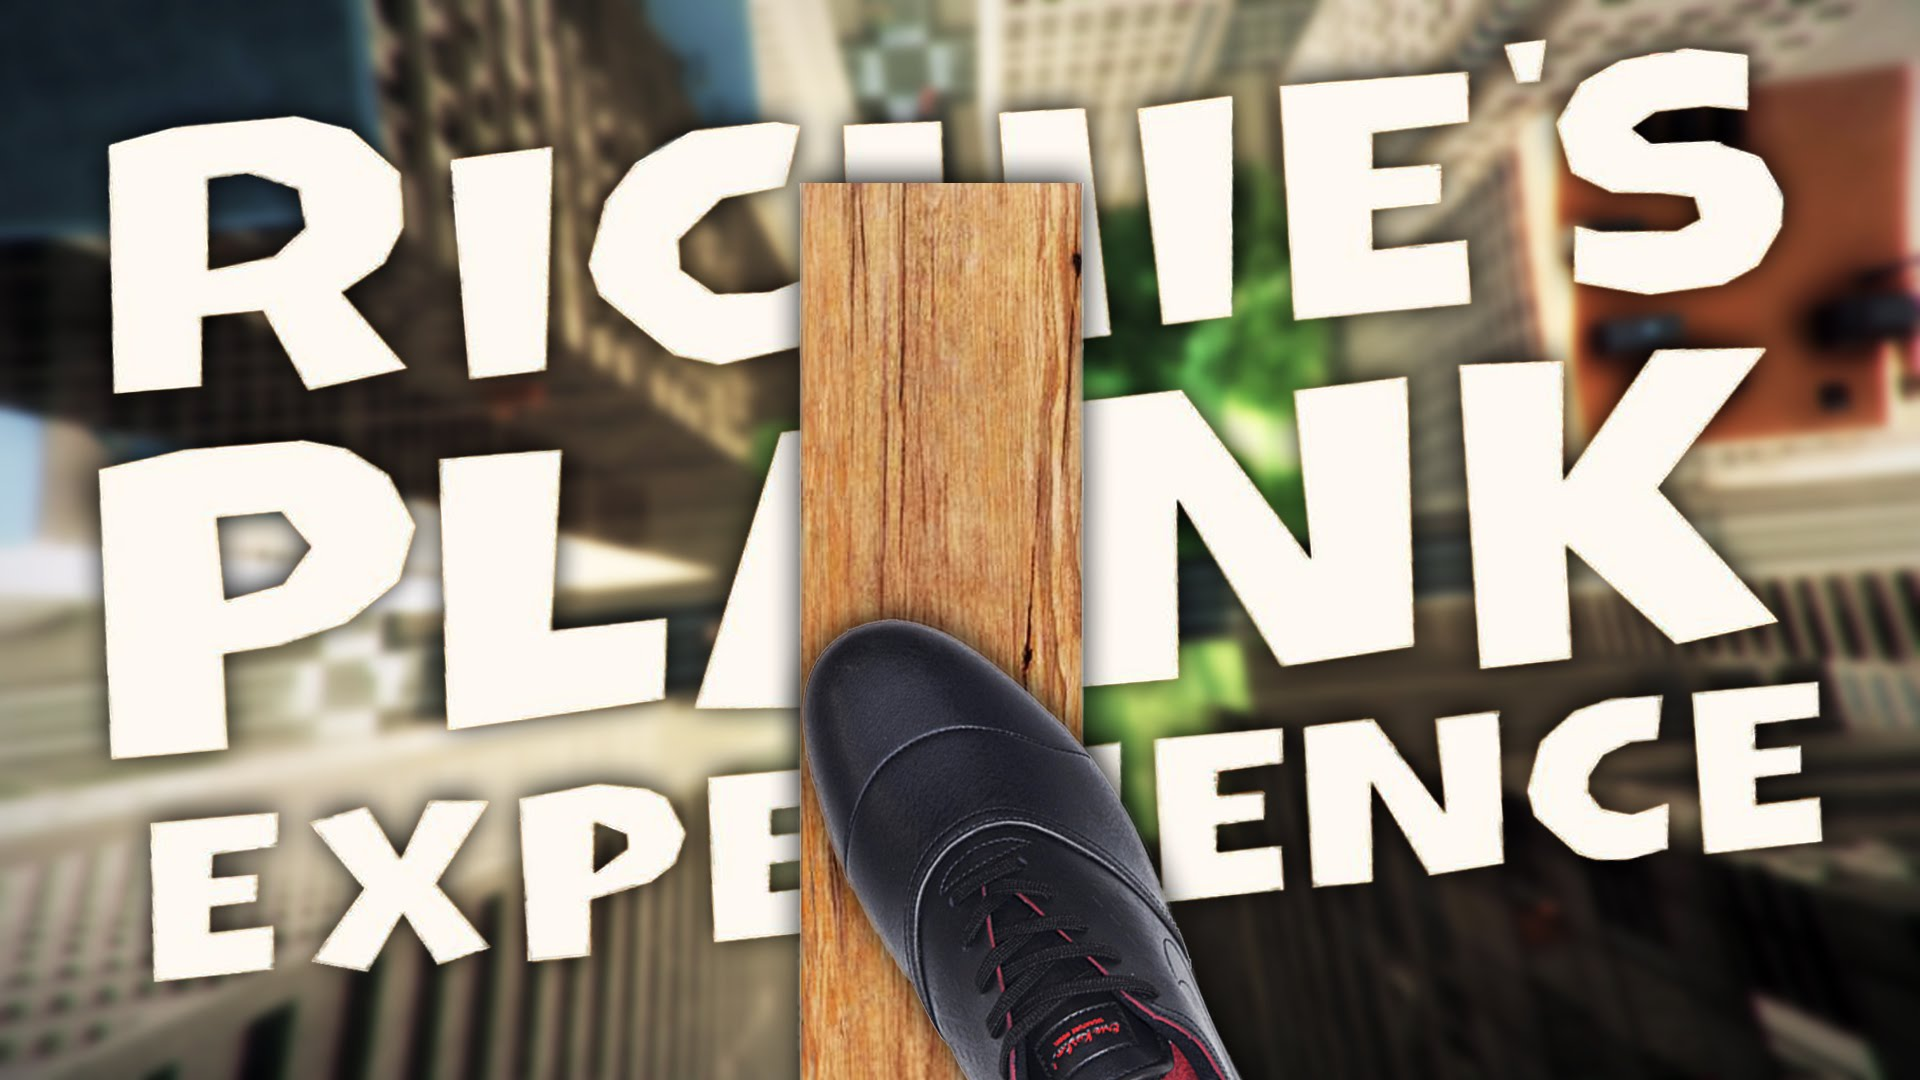 VR Event Booth Games: Richie's Plank Experience Review